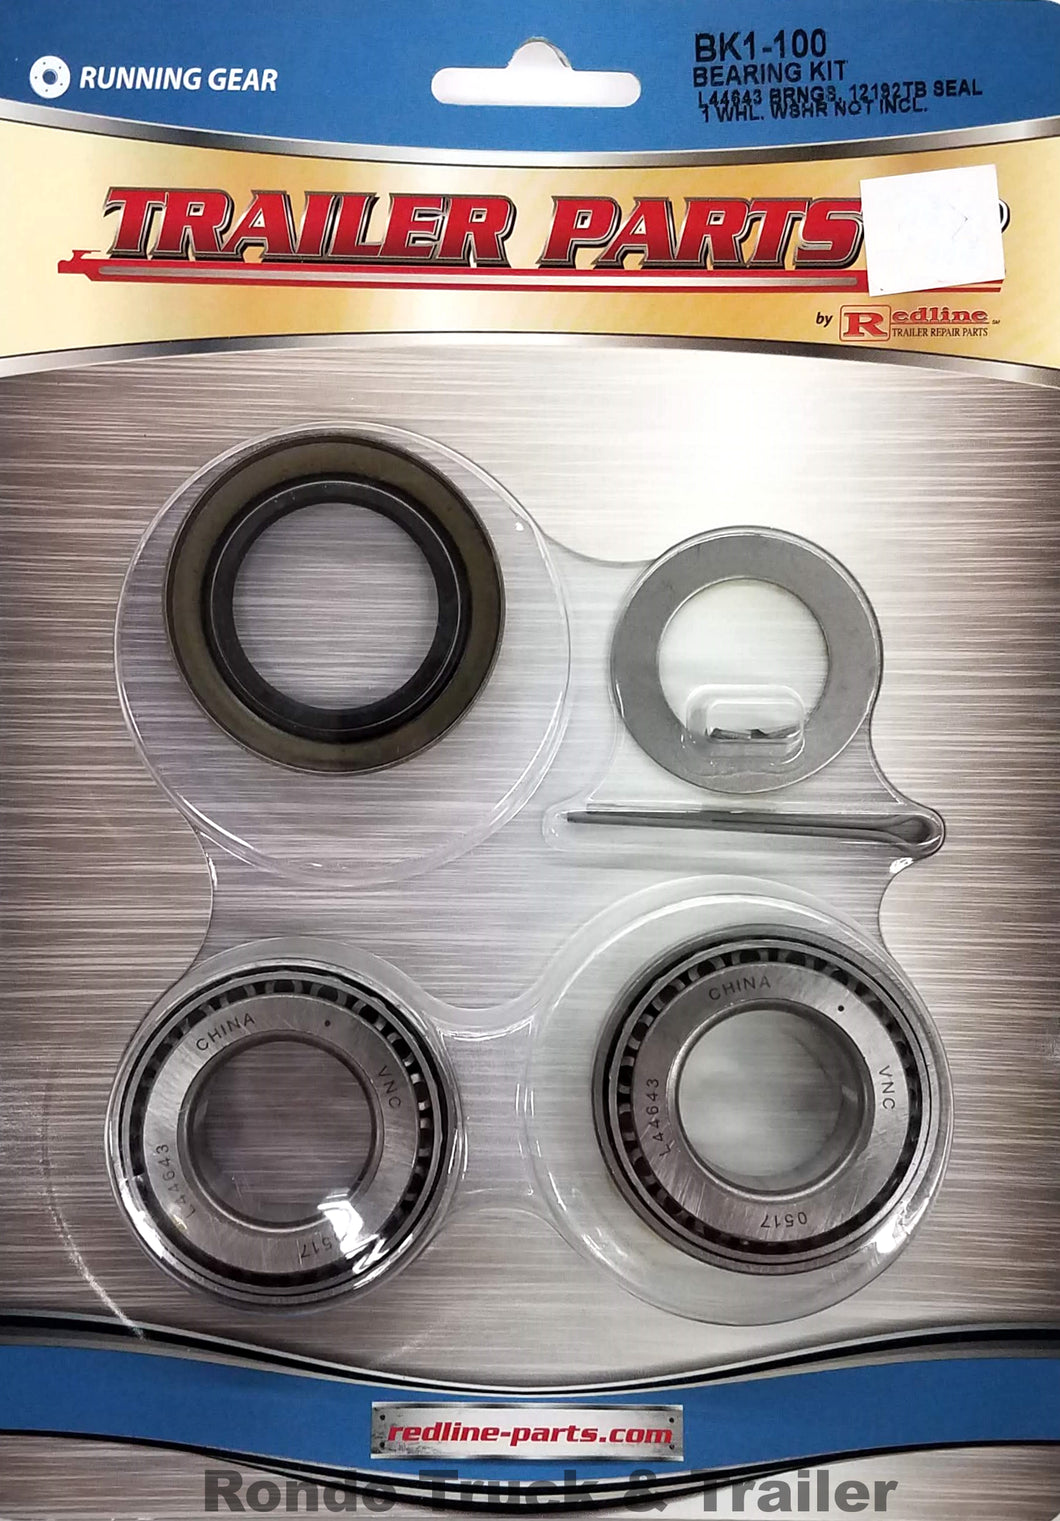 Redline 2,000# Axle Bearing Kit w/L44643 Bearings BK1-100